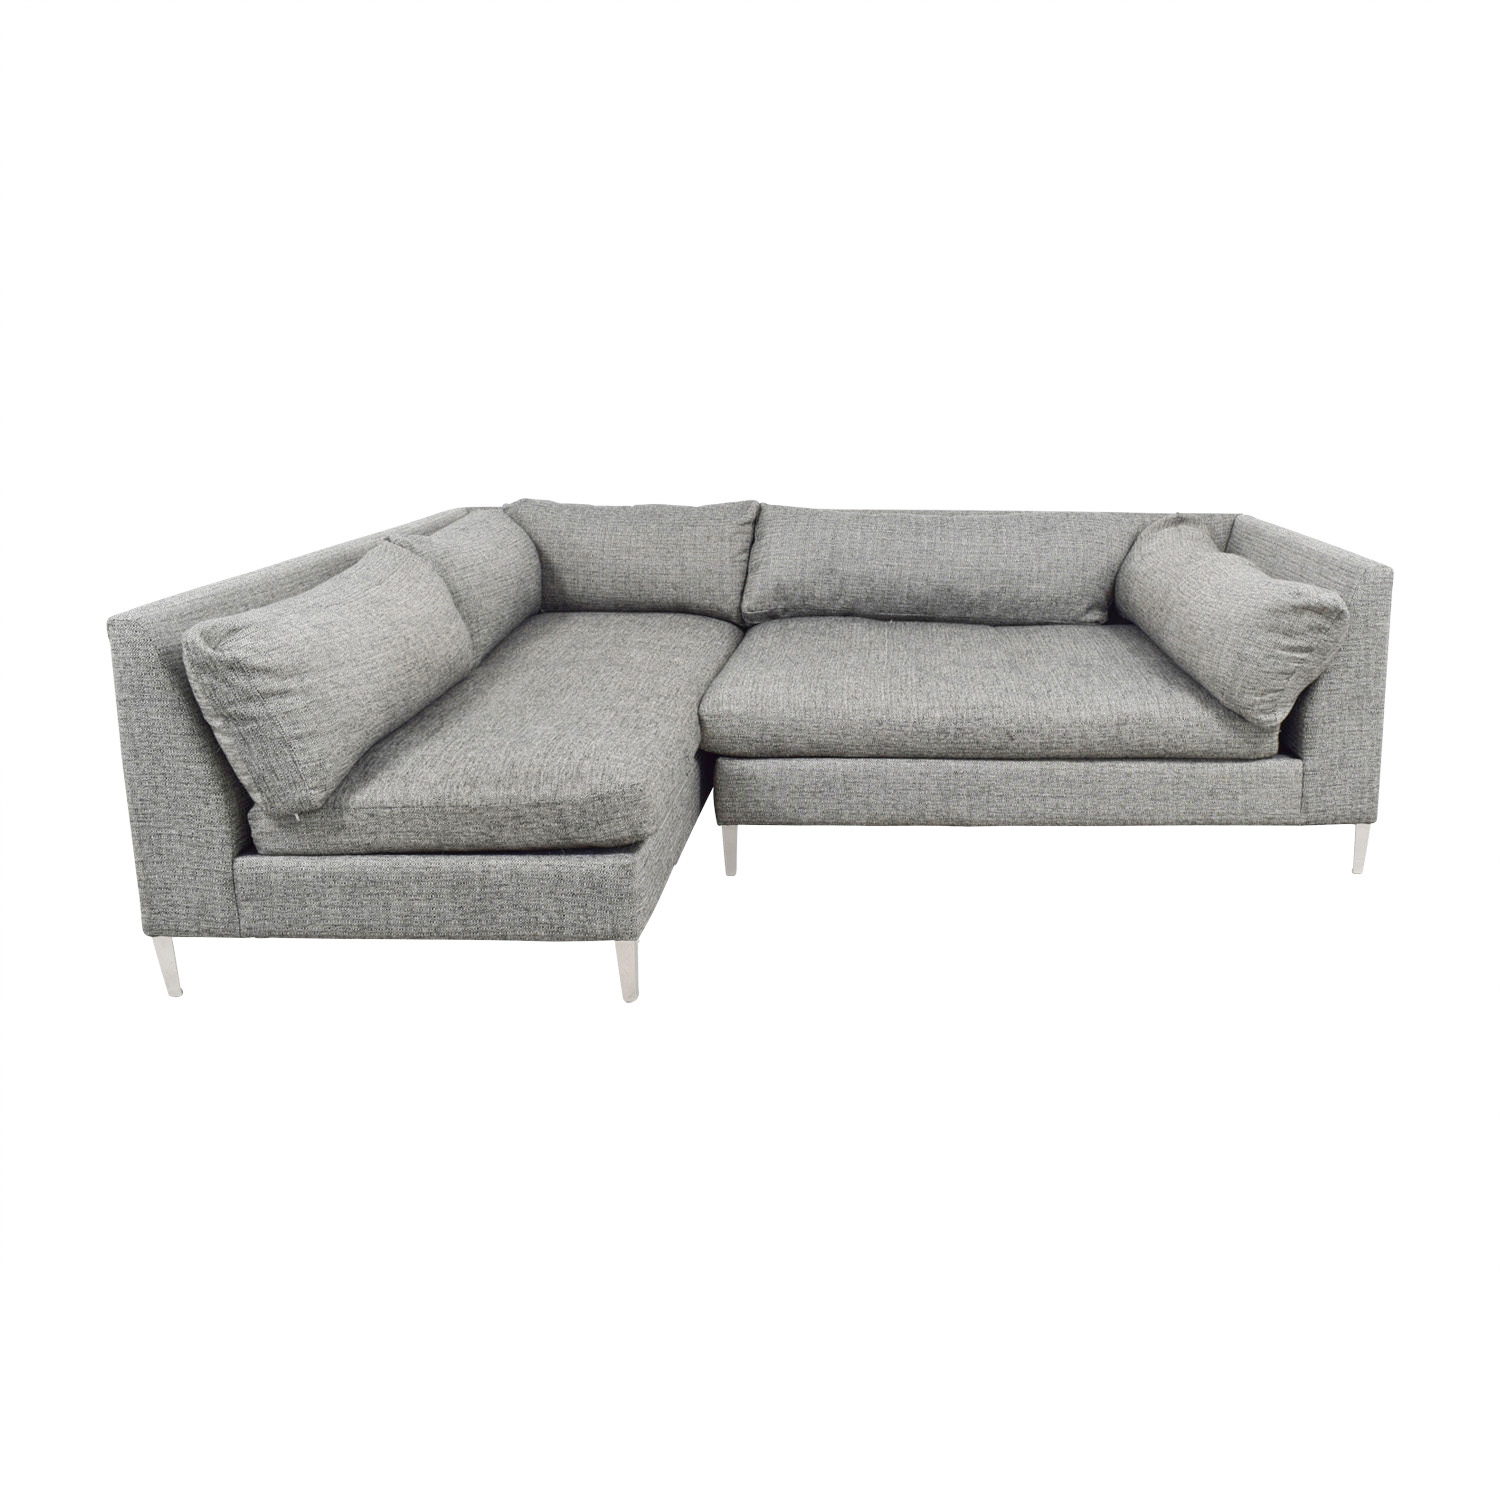 buy CB2 Decker Grey Sectional CB2